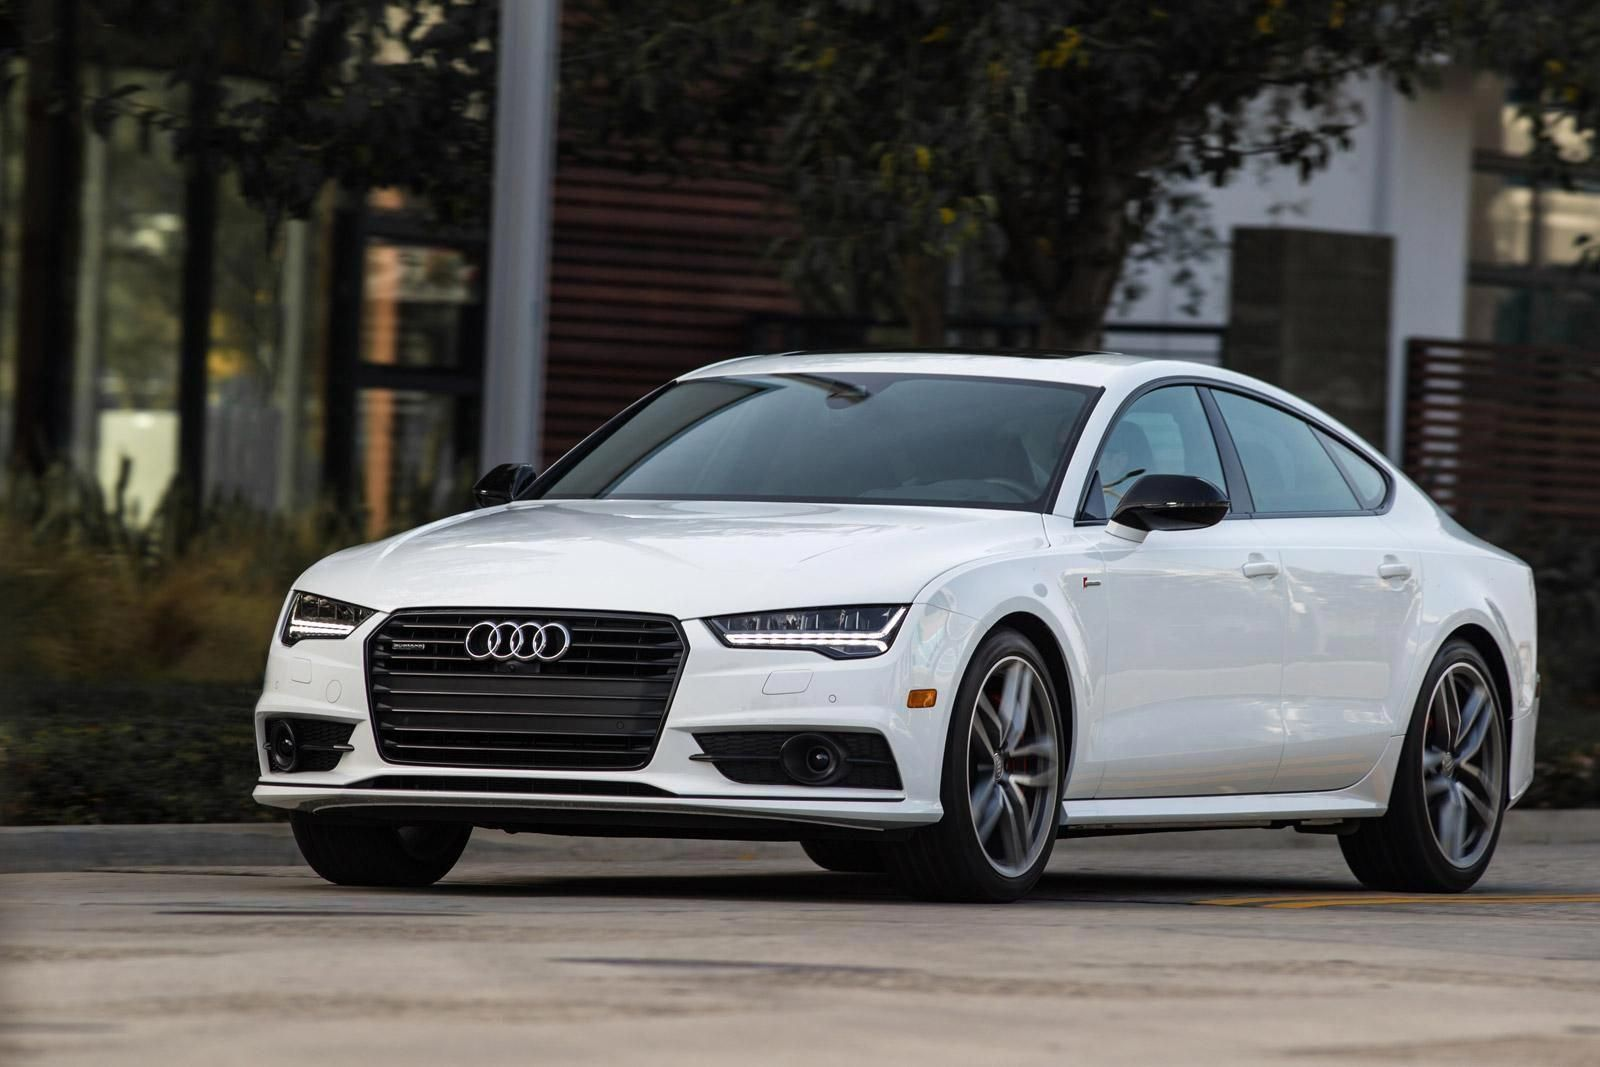 2018 Audi A4 Price Car 2018 2019 Audia4 Cars Pinterest